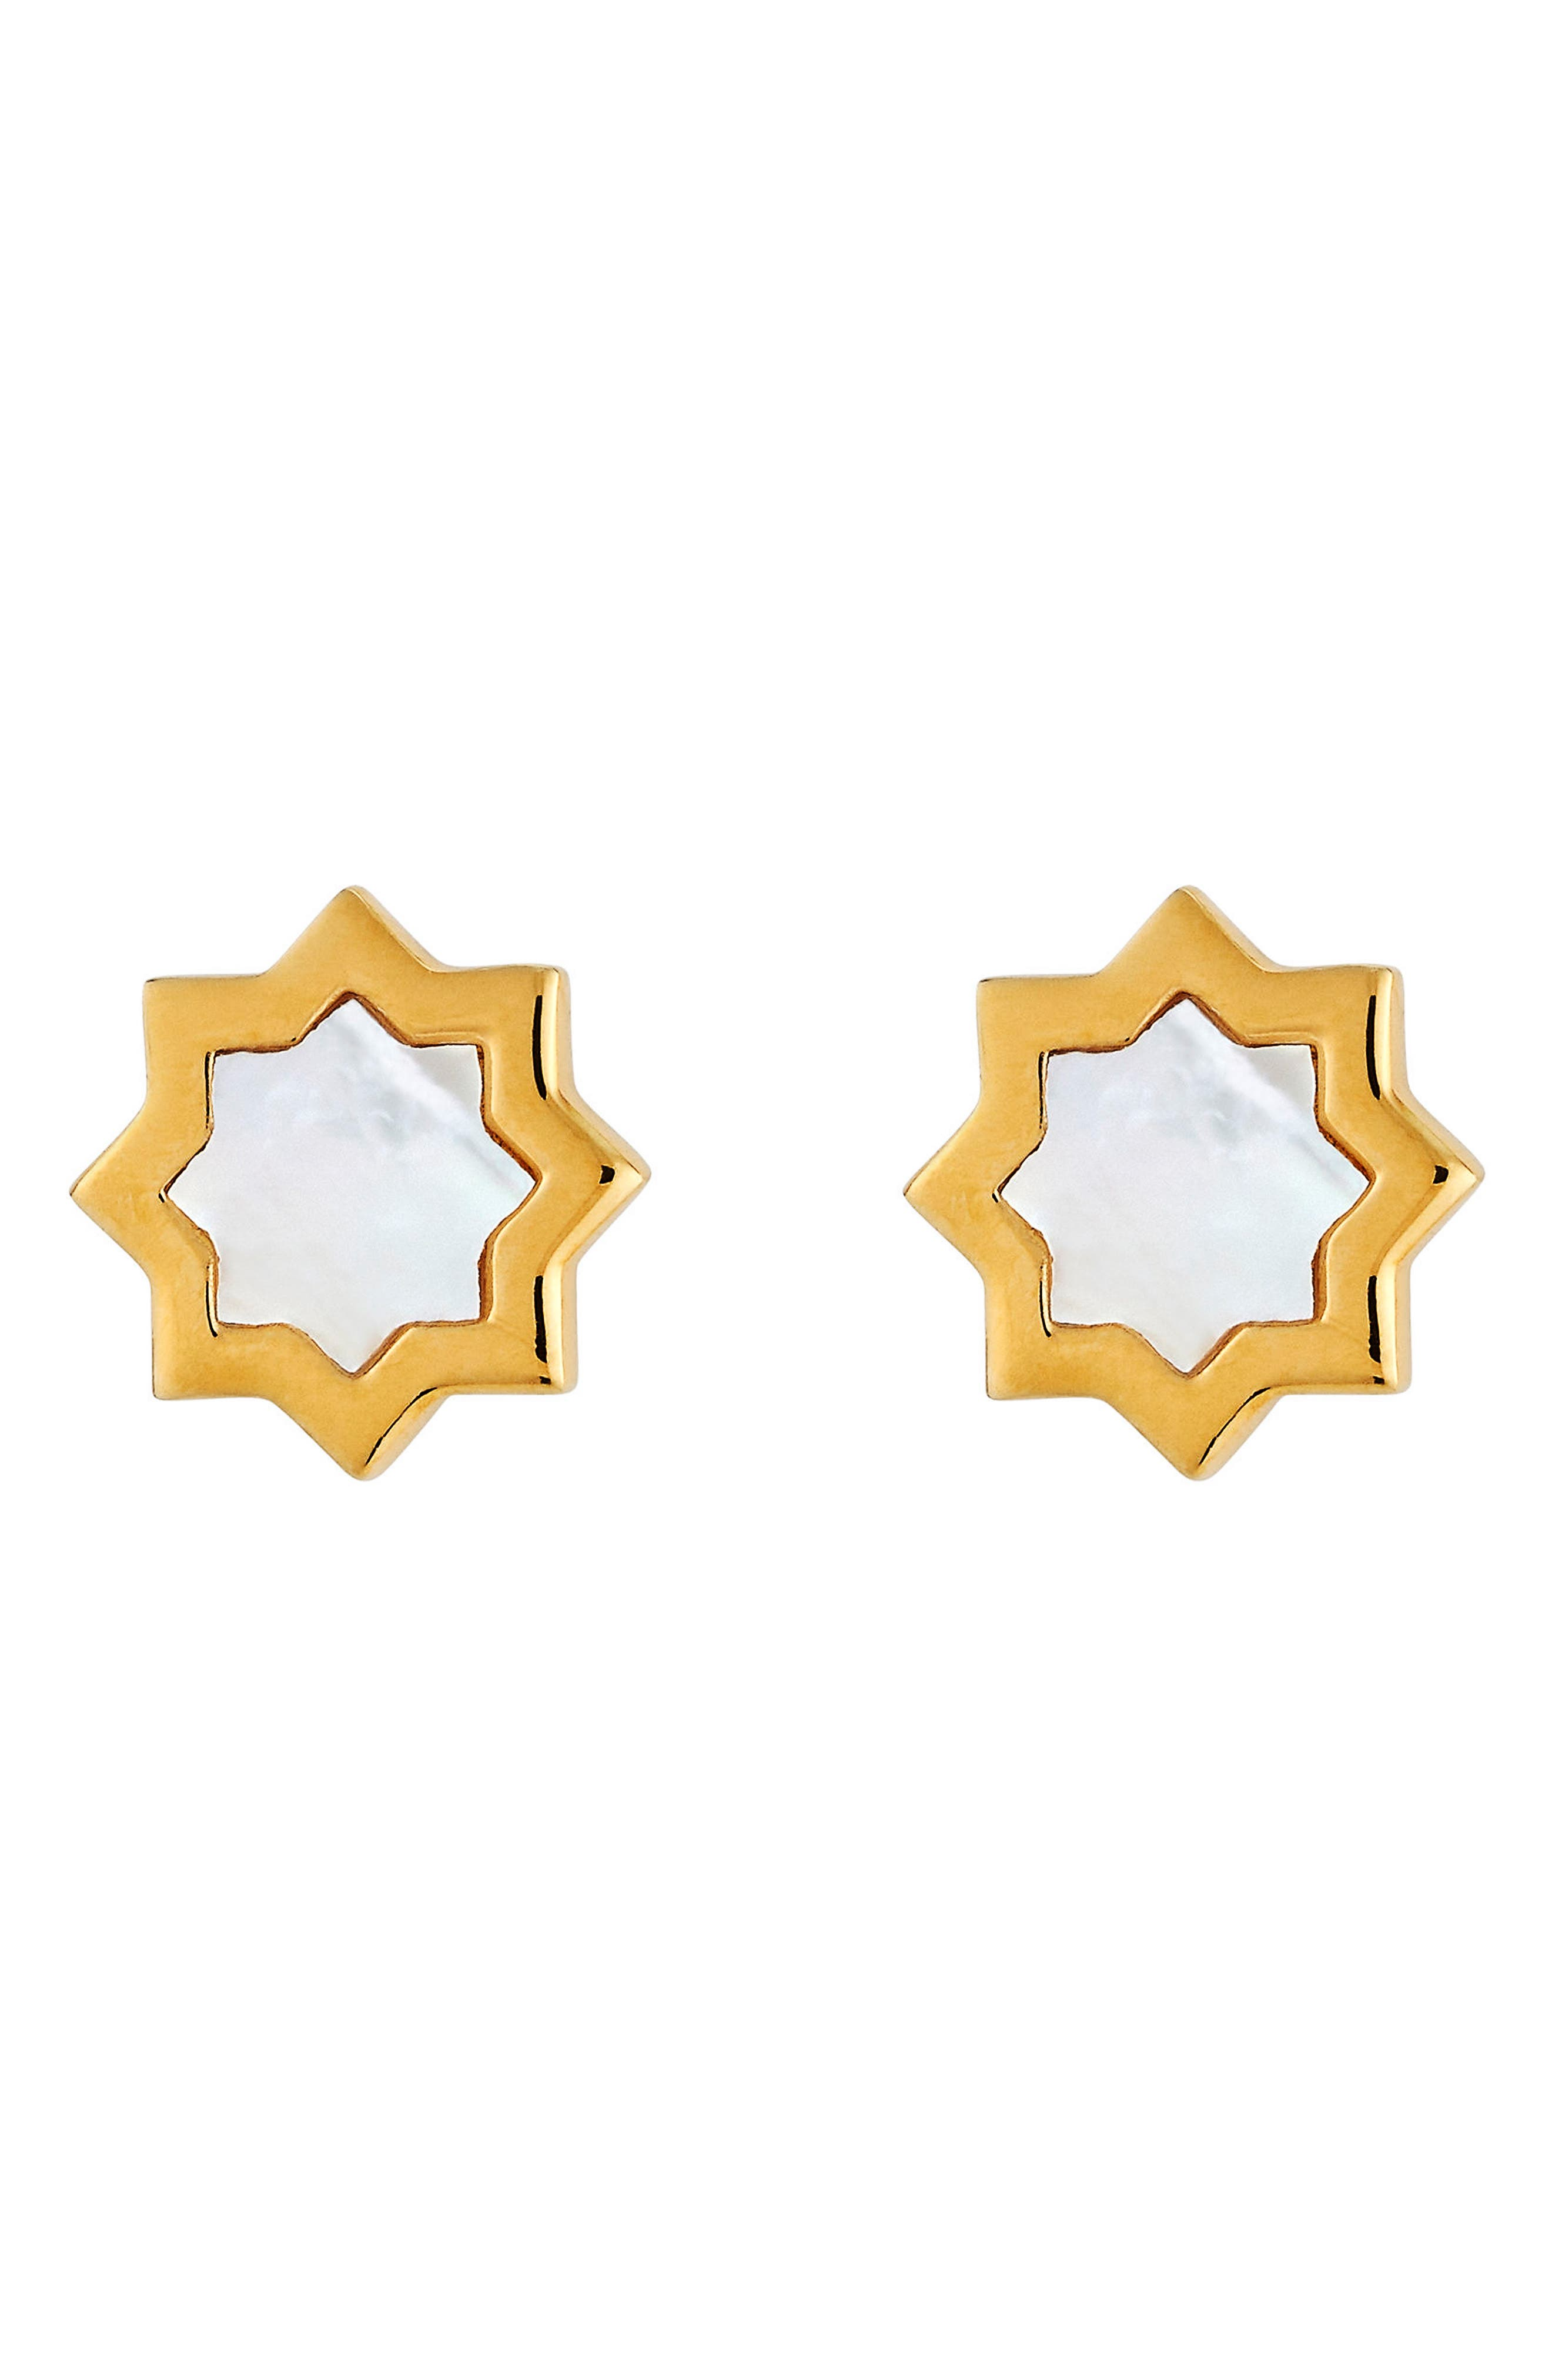 Kismet Mother-of-Pearl Stud Earrings,                         Main,                         color,